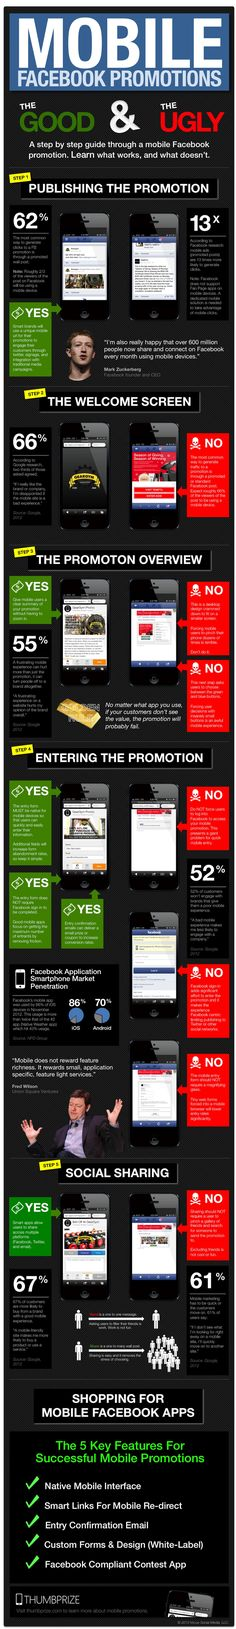 Promotions in Facebook